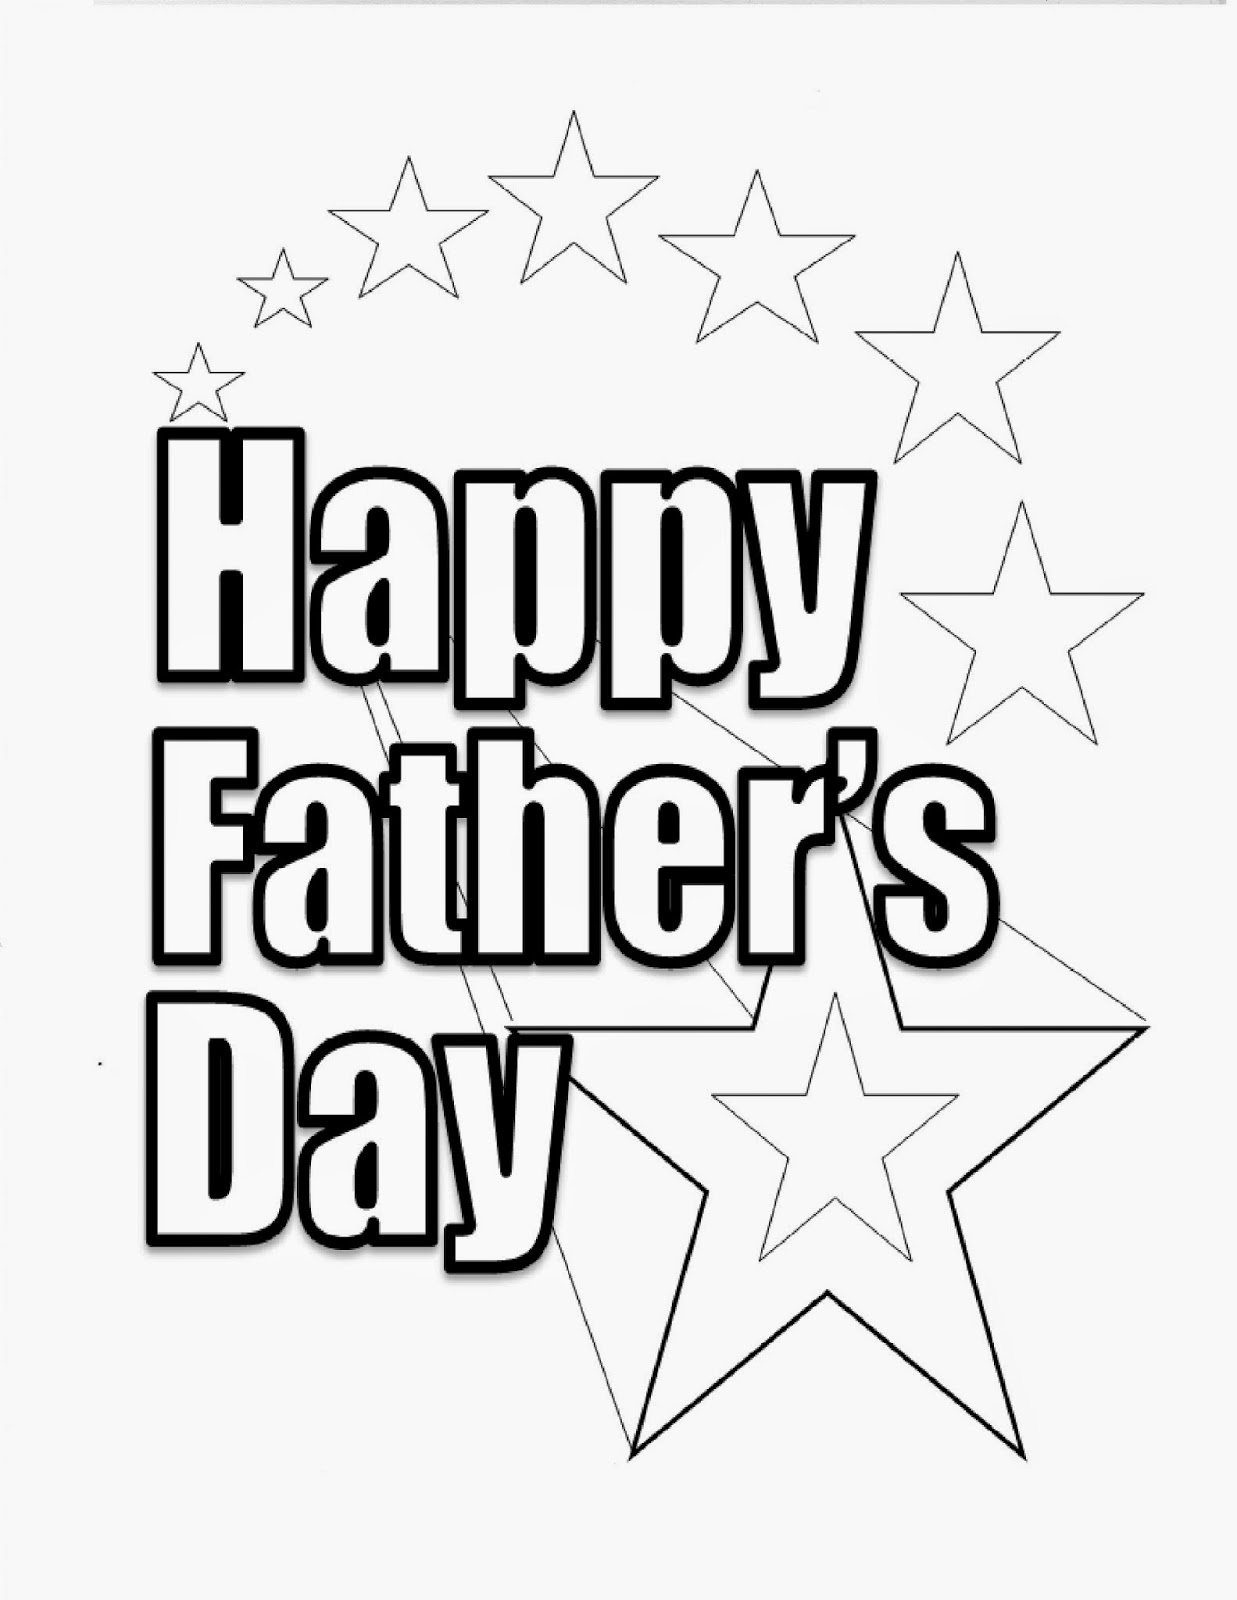 24 Happy Fathers Day Coloring Pages Printable | FREE COLORING PAGES ...